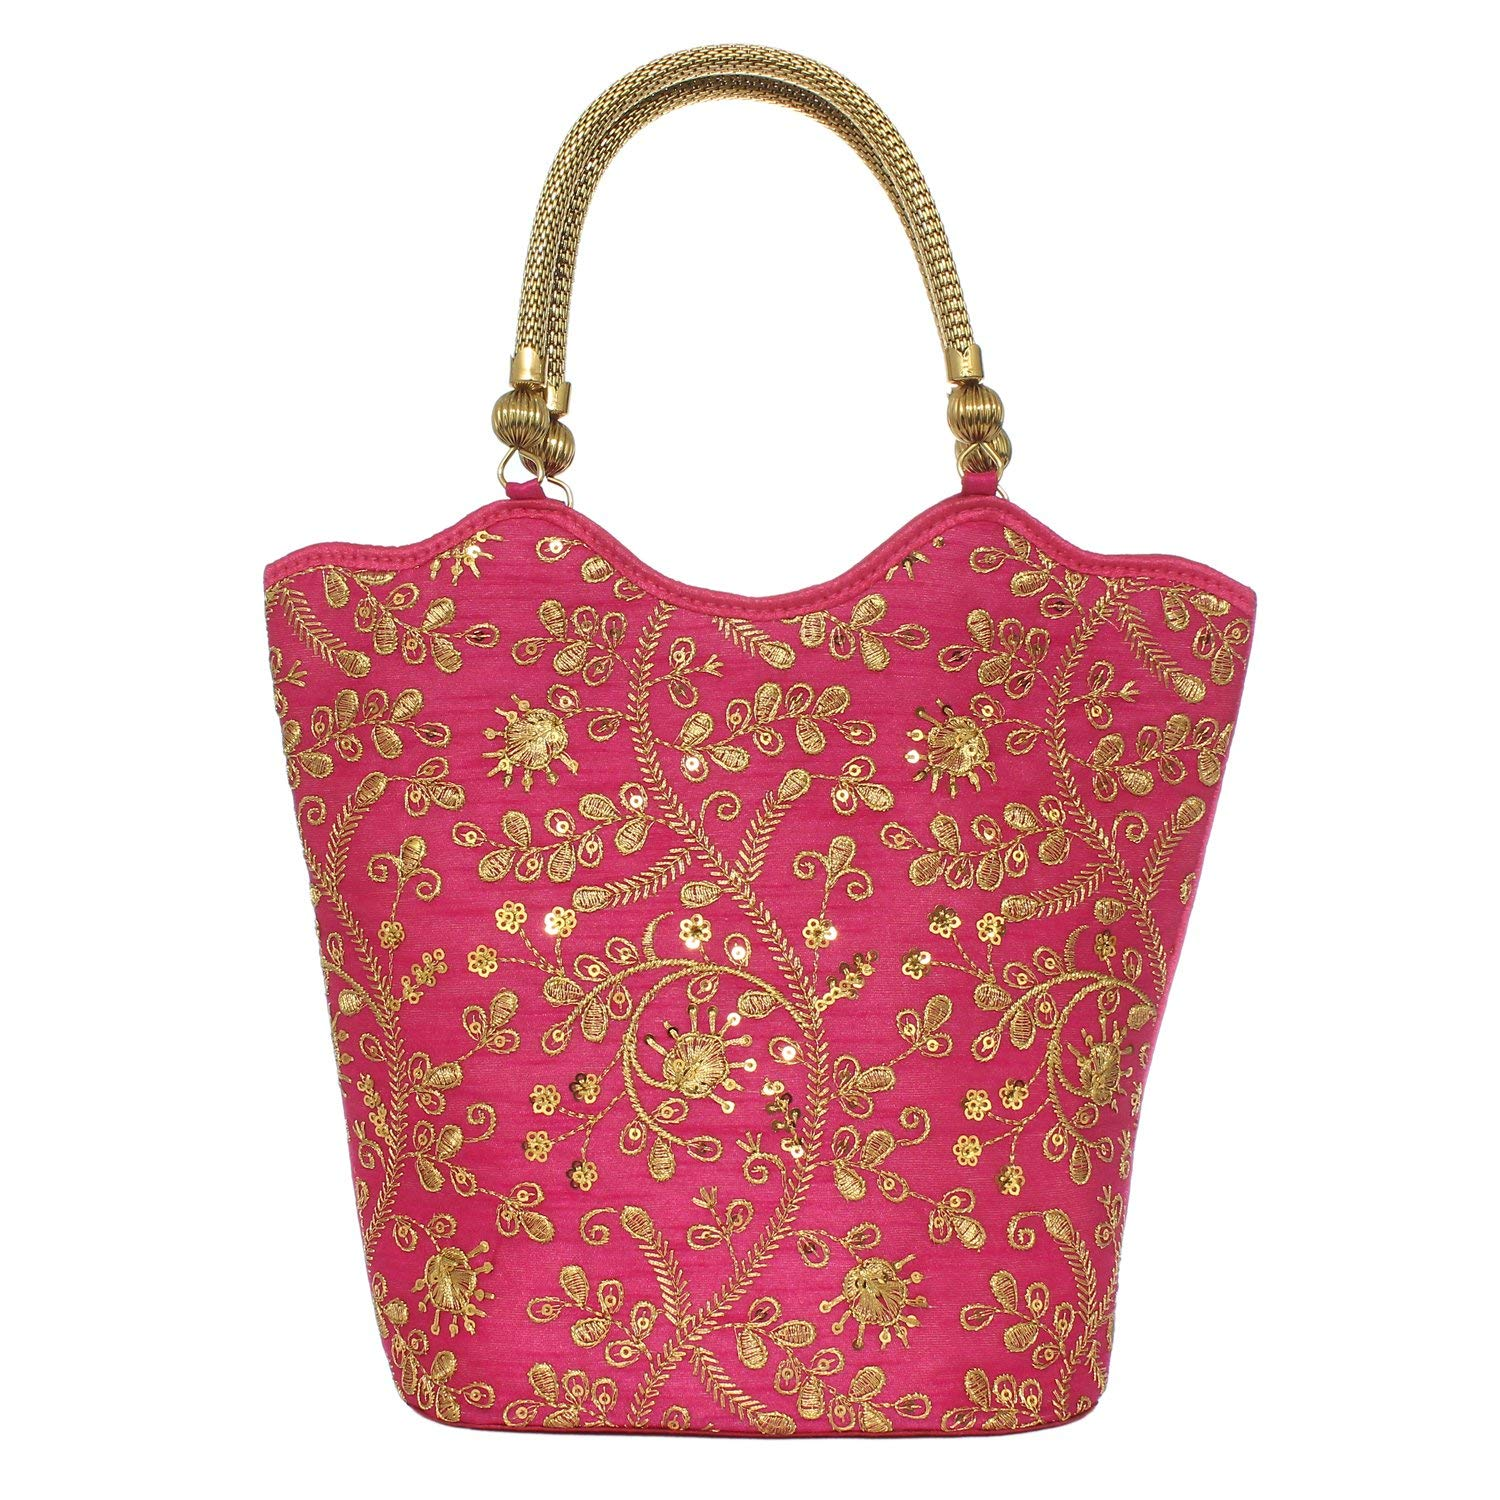 Ethnic Silk Hand Held Bag with Embroidery Work (Pink) - Bagaholics Gift